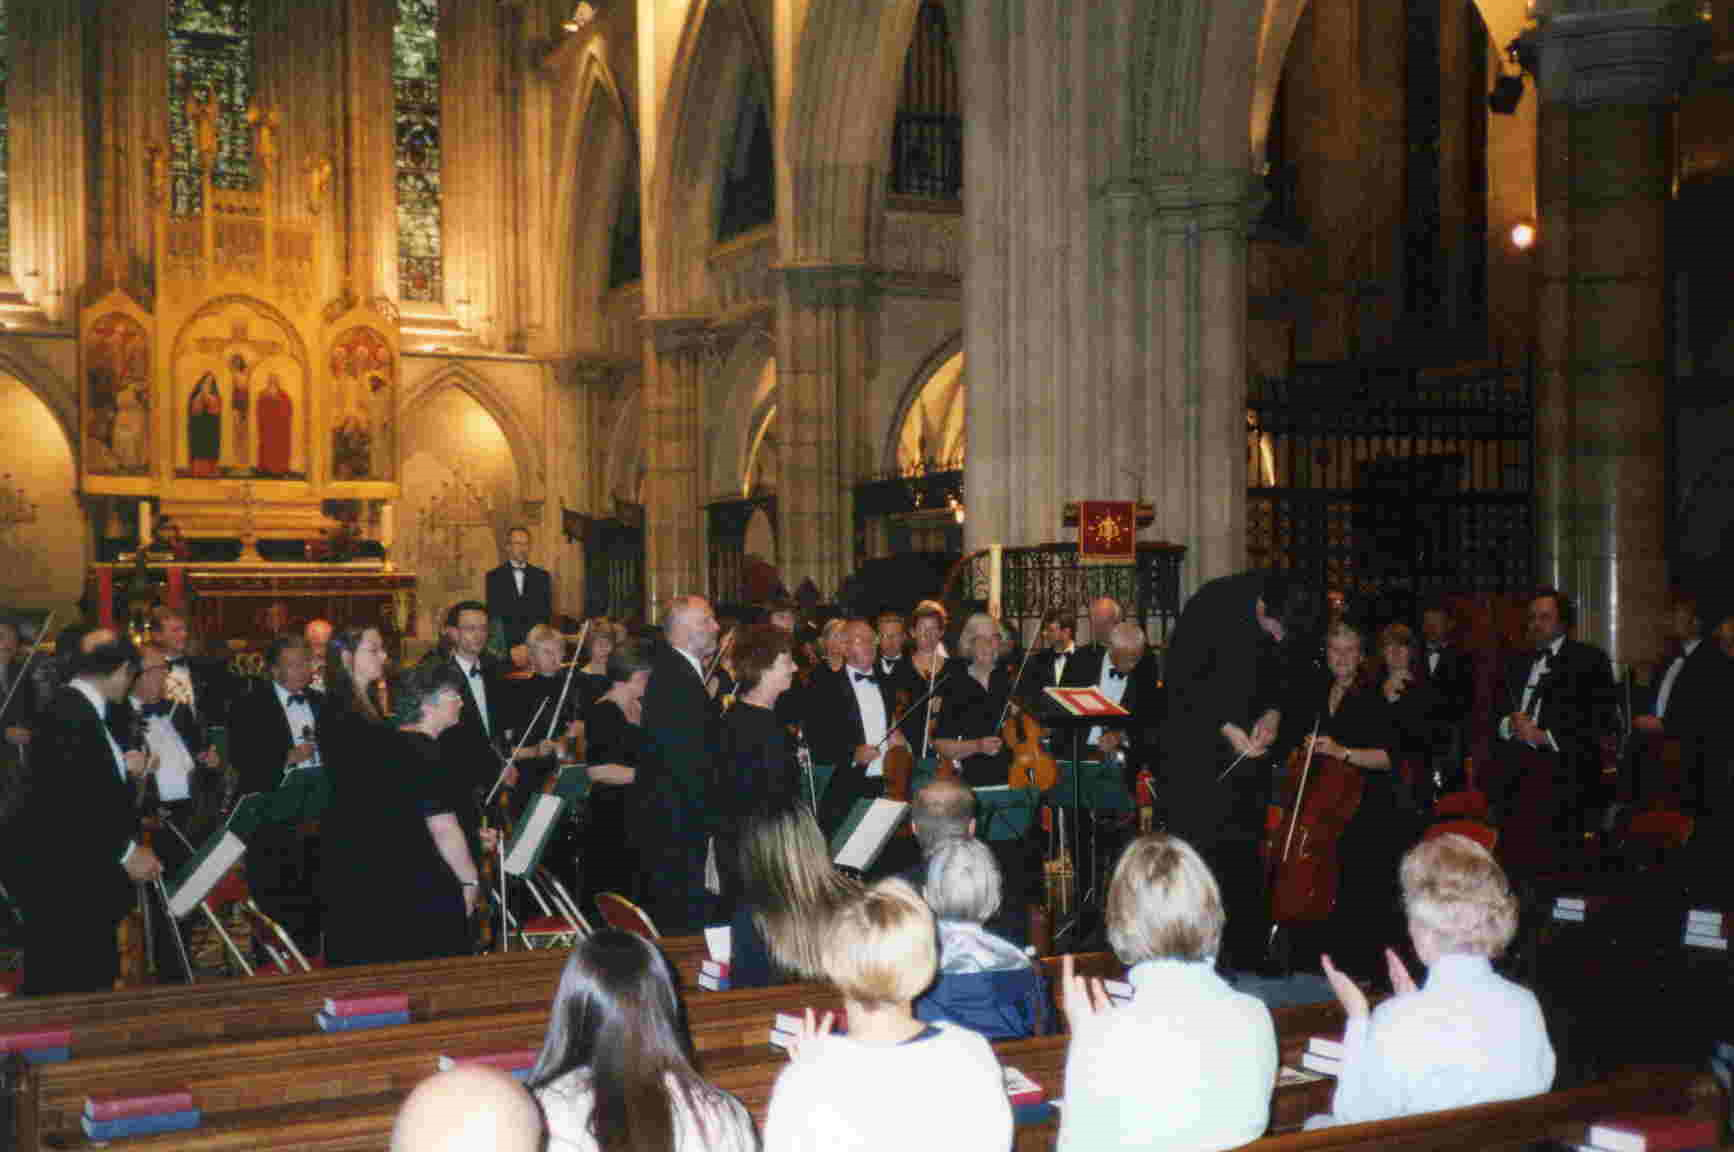 The orchestra performing in the American Cathedral